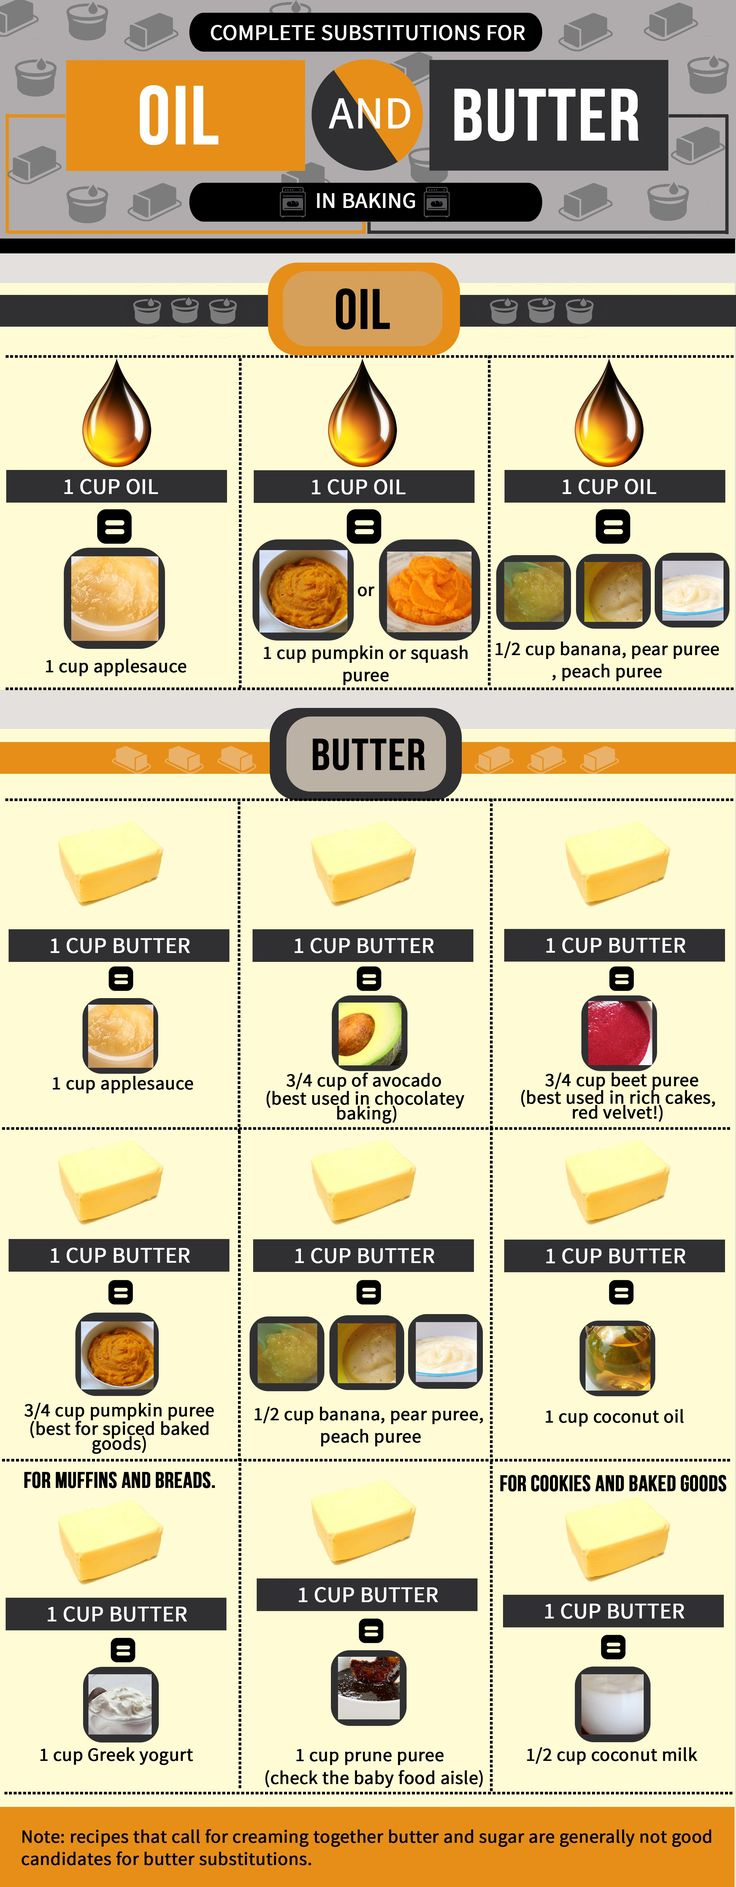 Baking substitutions for oil and butter can be hard to find in one place. Here we have many, many options to help you bake without the fat!